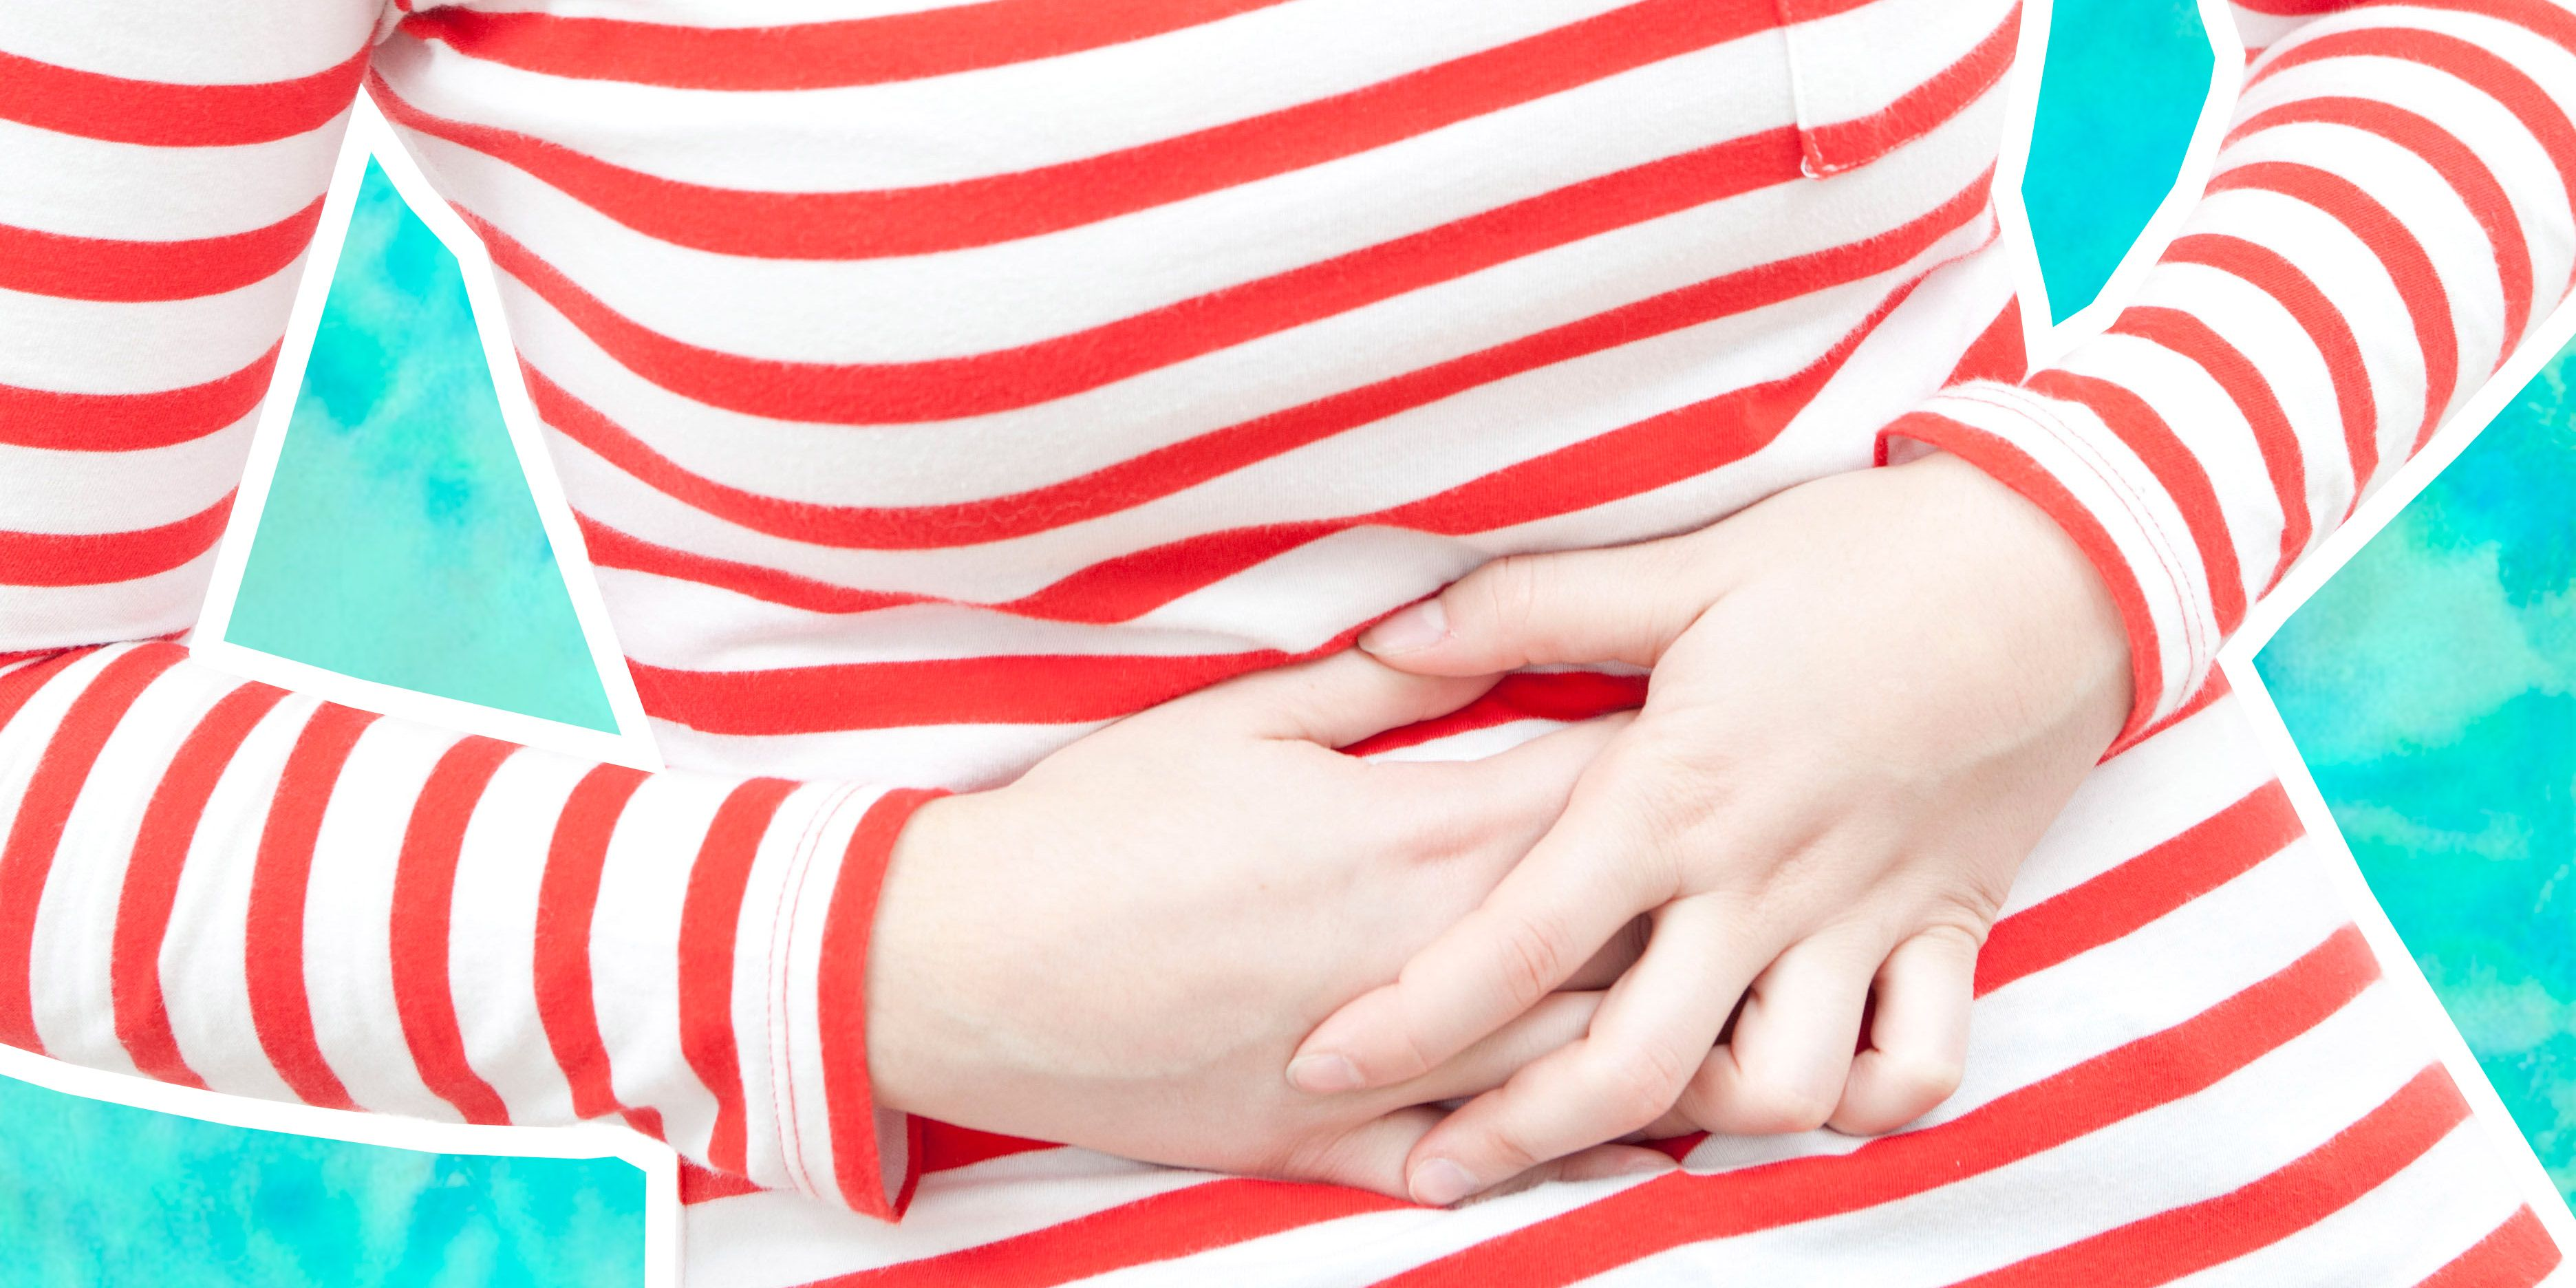 How to Get Rid of Cramps Fast - 7 Tips for Period Pain Relief